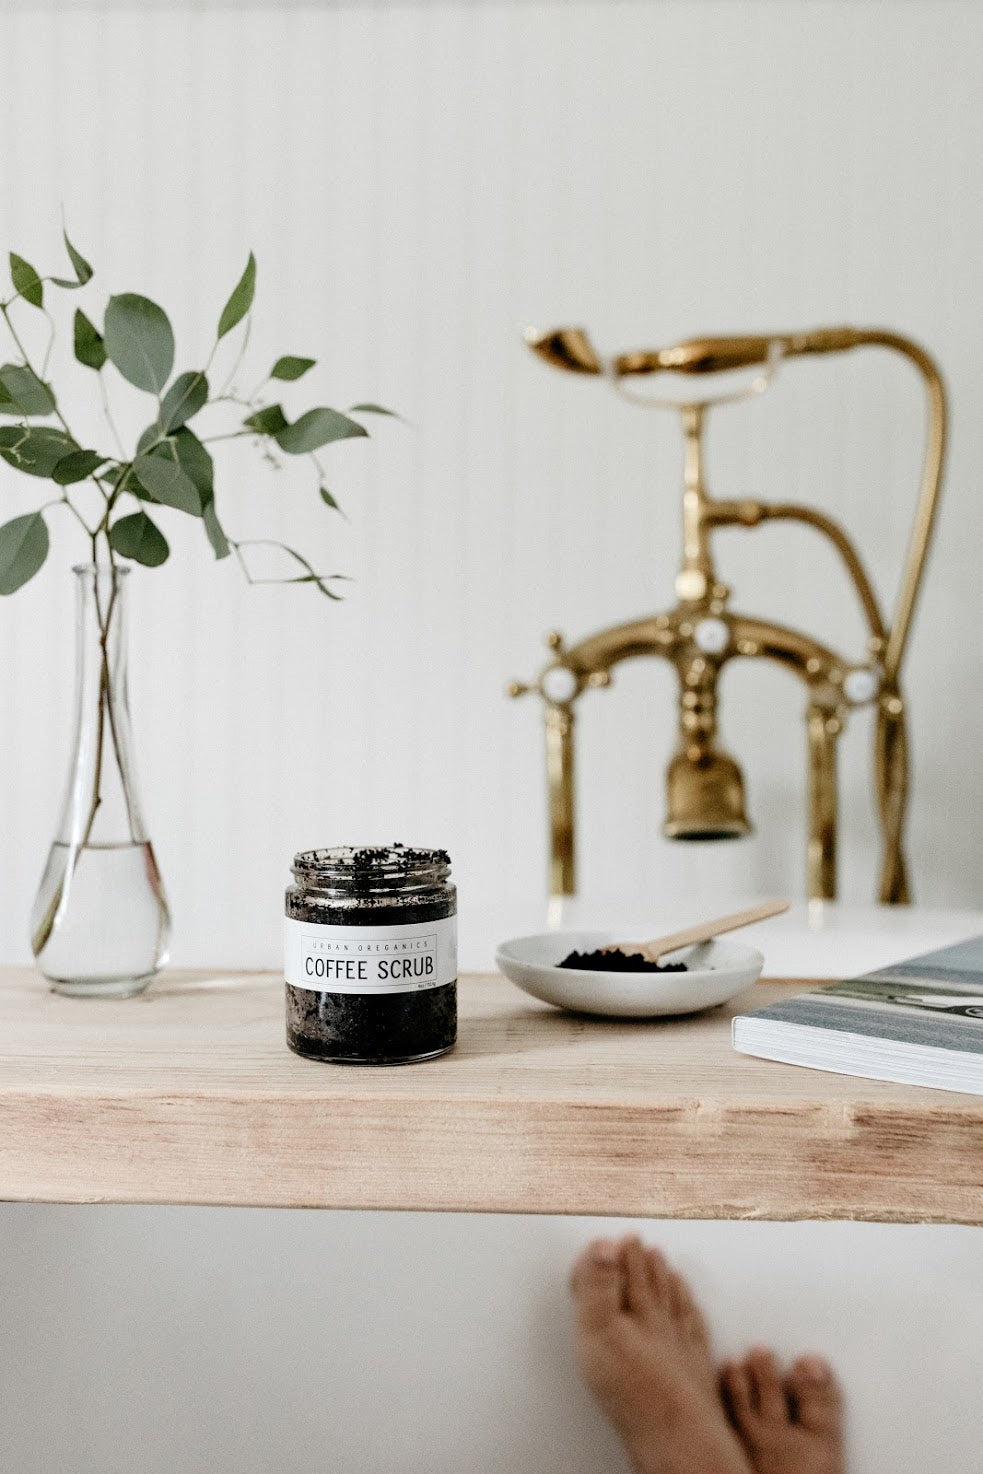 URBAN OREGANICS | Coffee Scrub